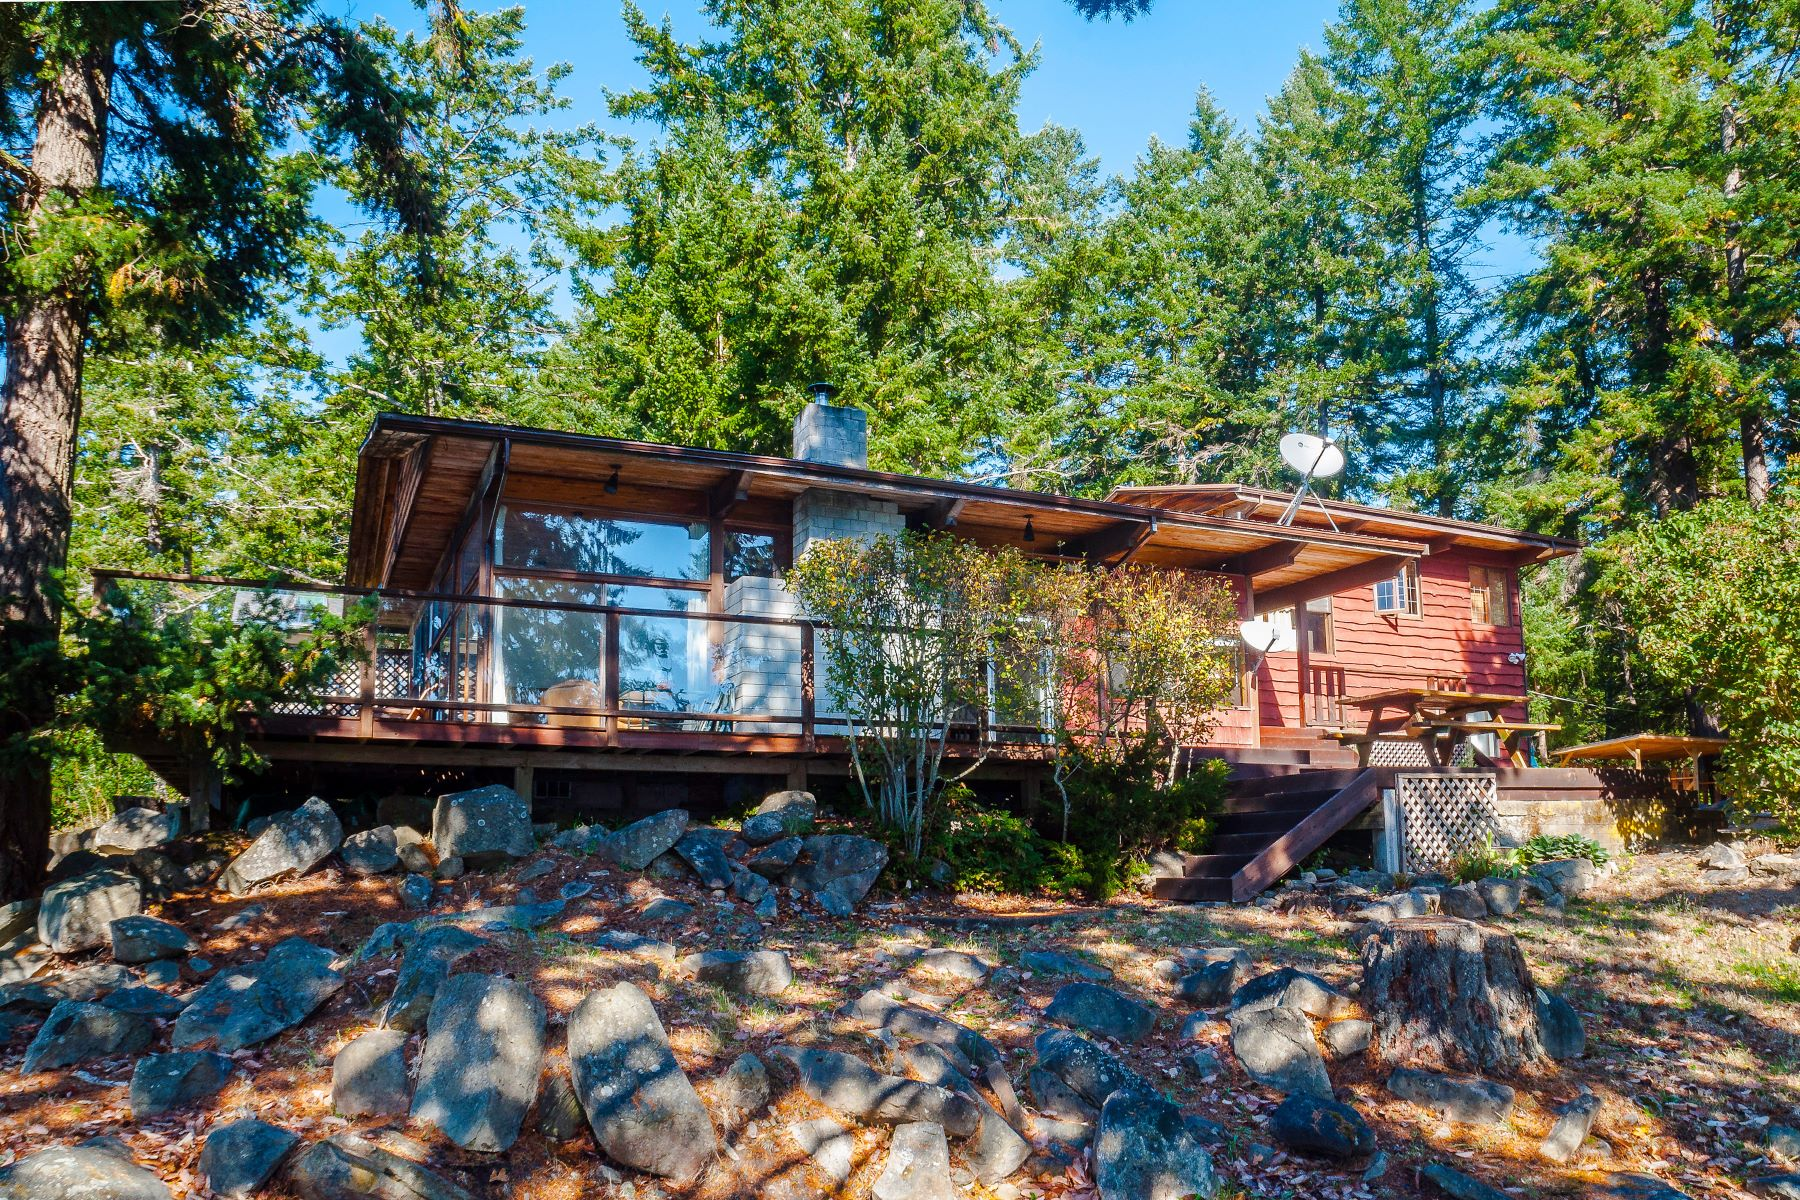 Casa Unifamiliar por un Venta en Galiano Island Waterfront B 19245 Porlier Pass Road Galiano, British Columbia V0N 1P0 Canadá